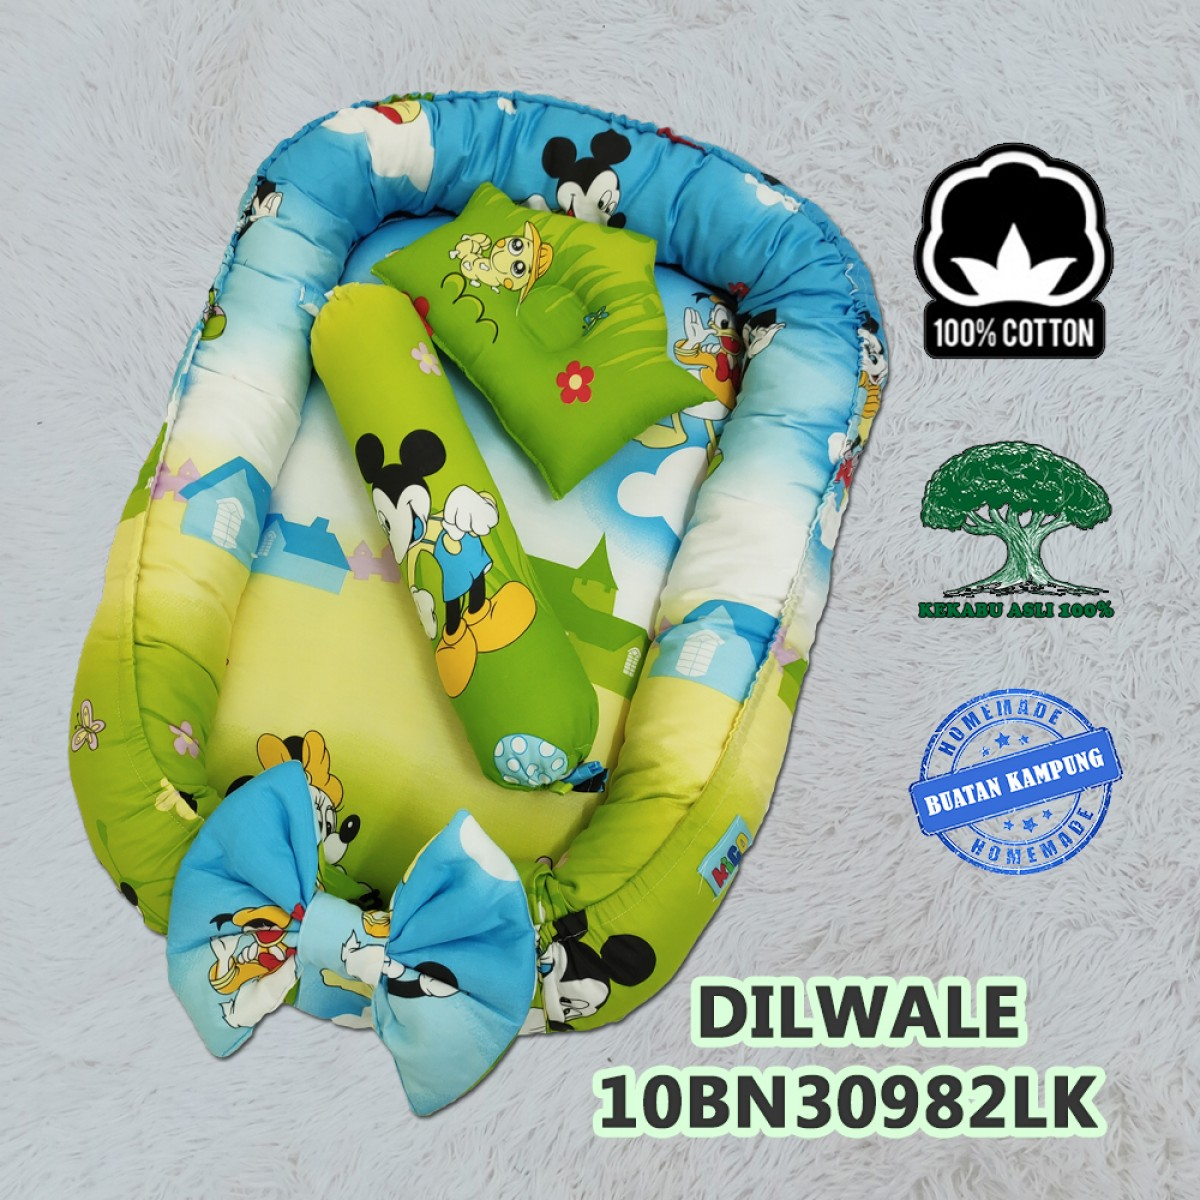 Dilwale - Kico Baby Center